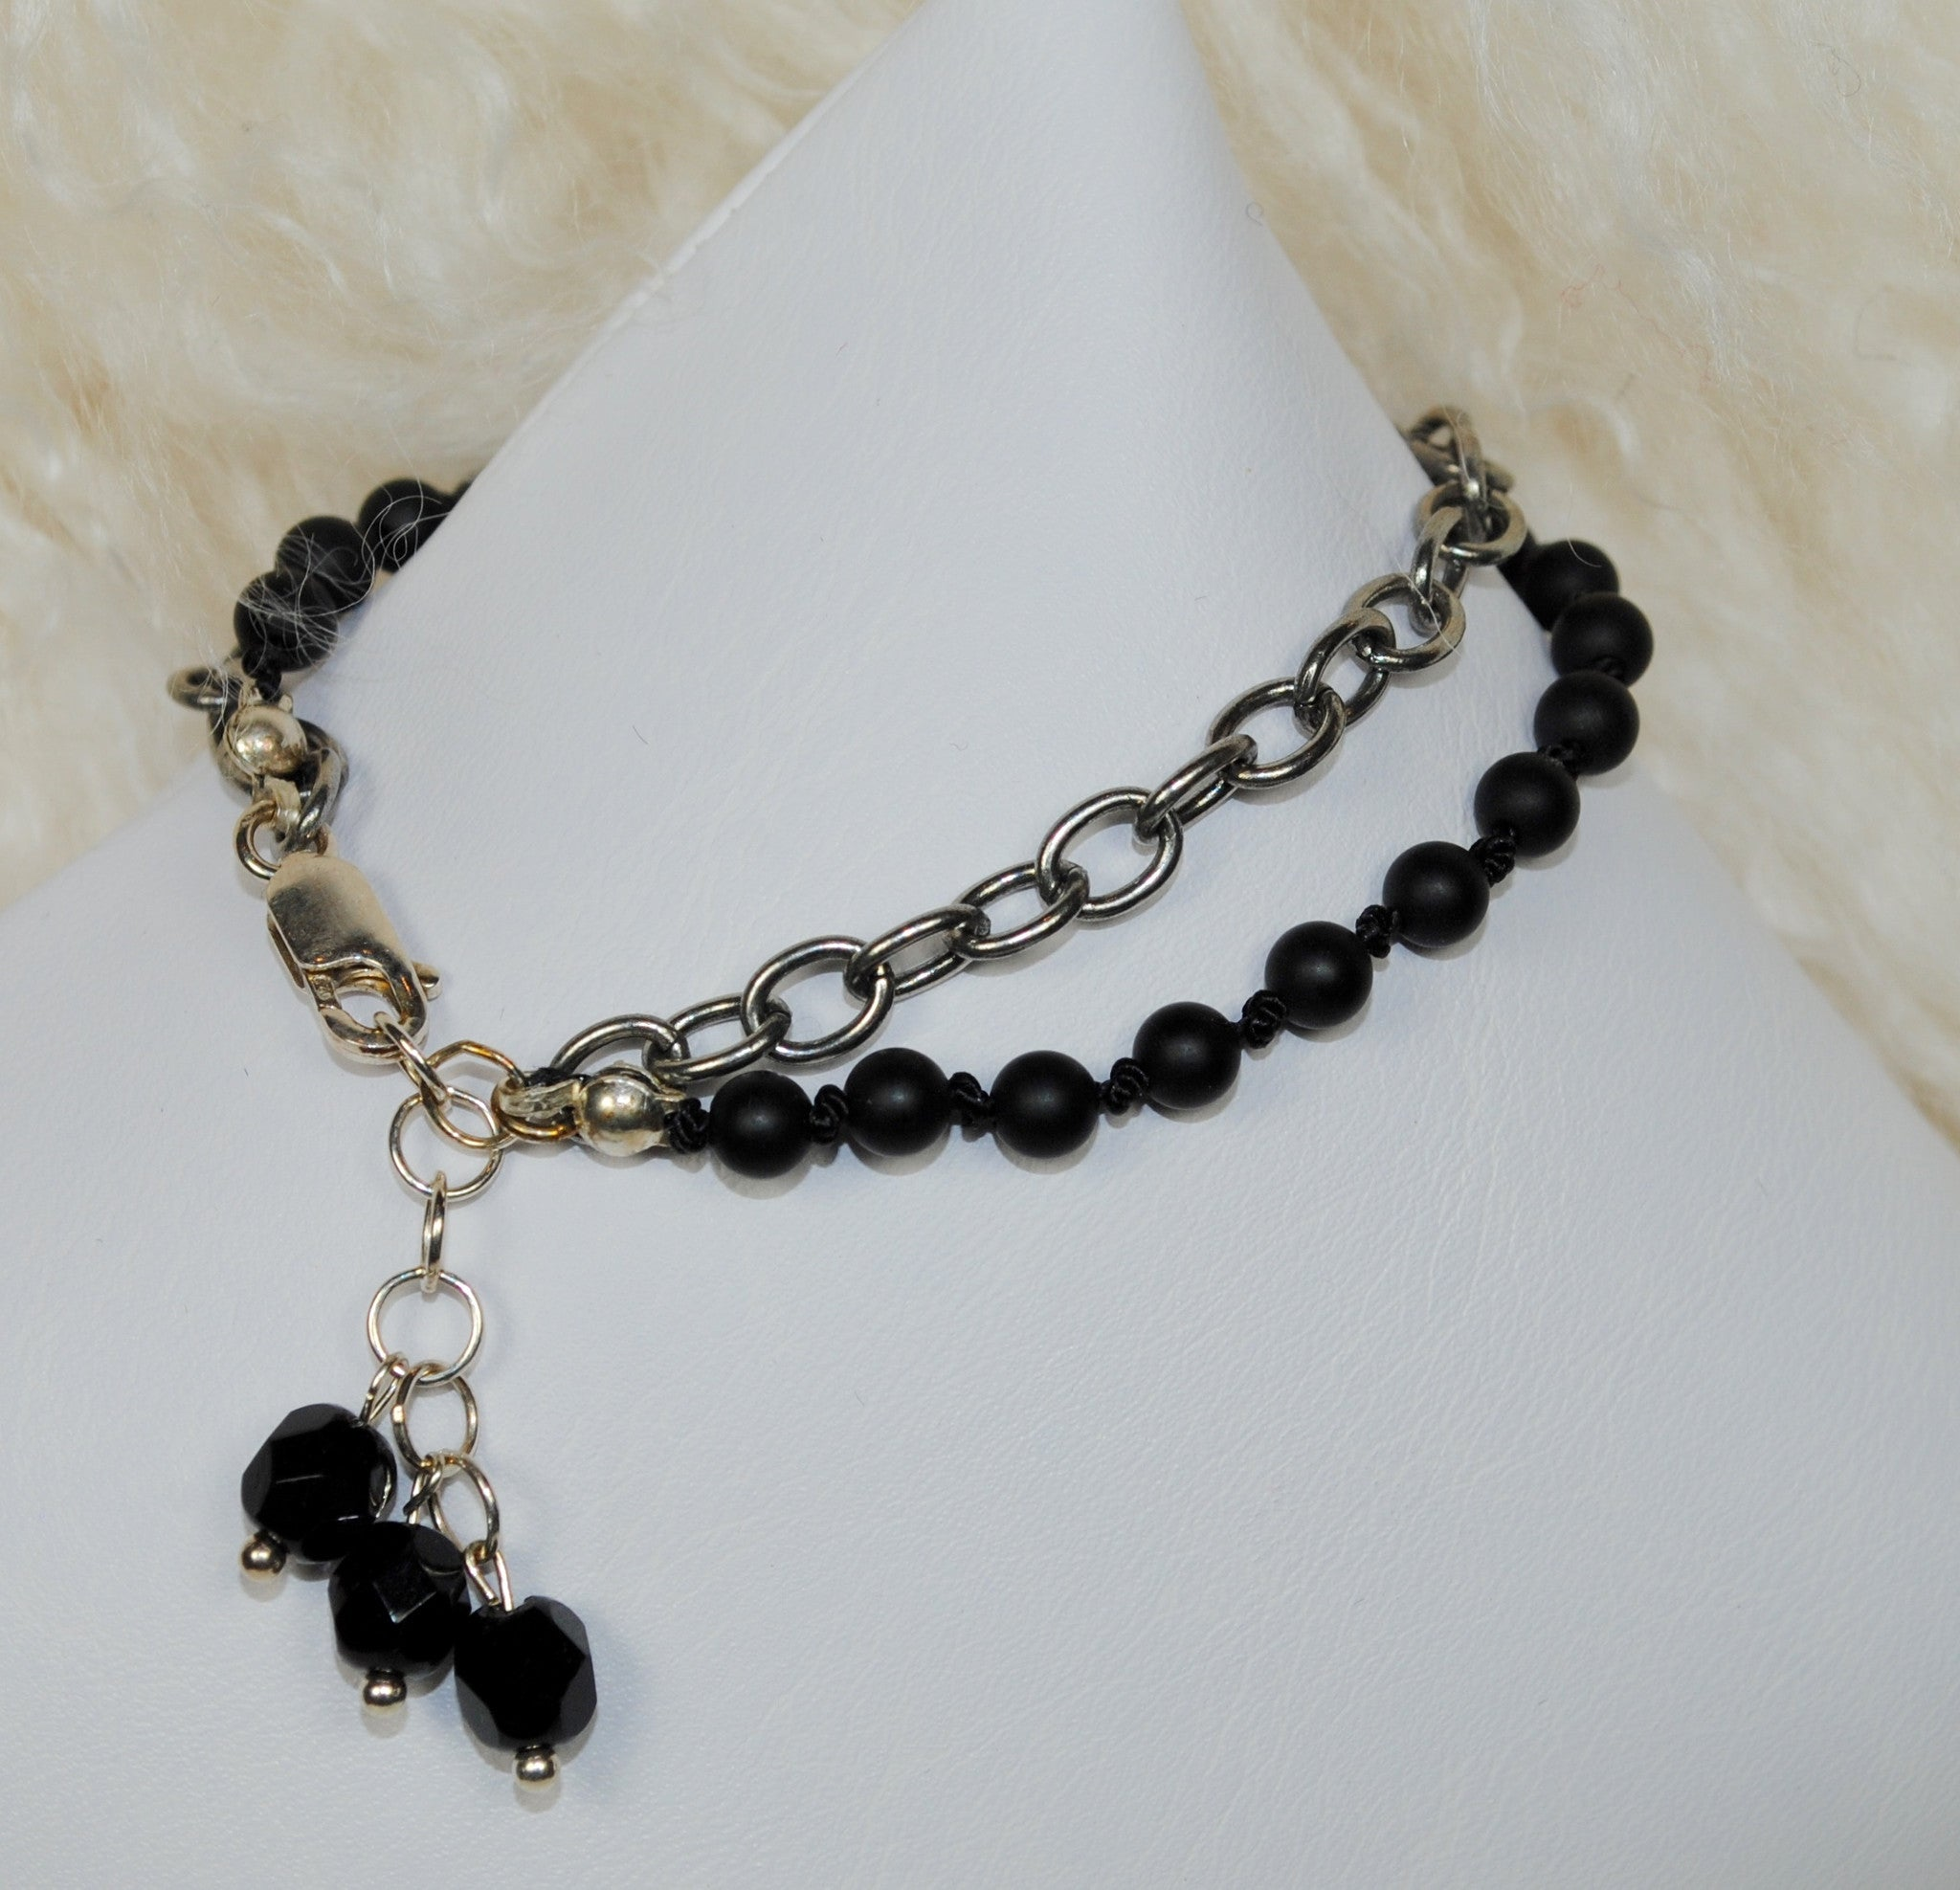 Double Strand Chain & Black Bracelet